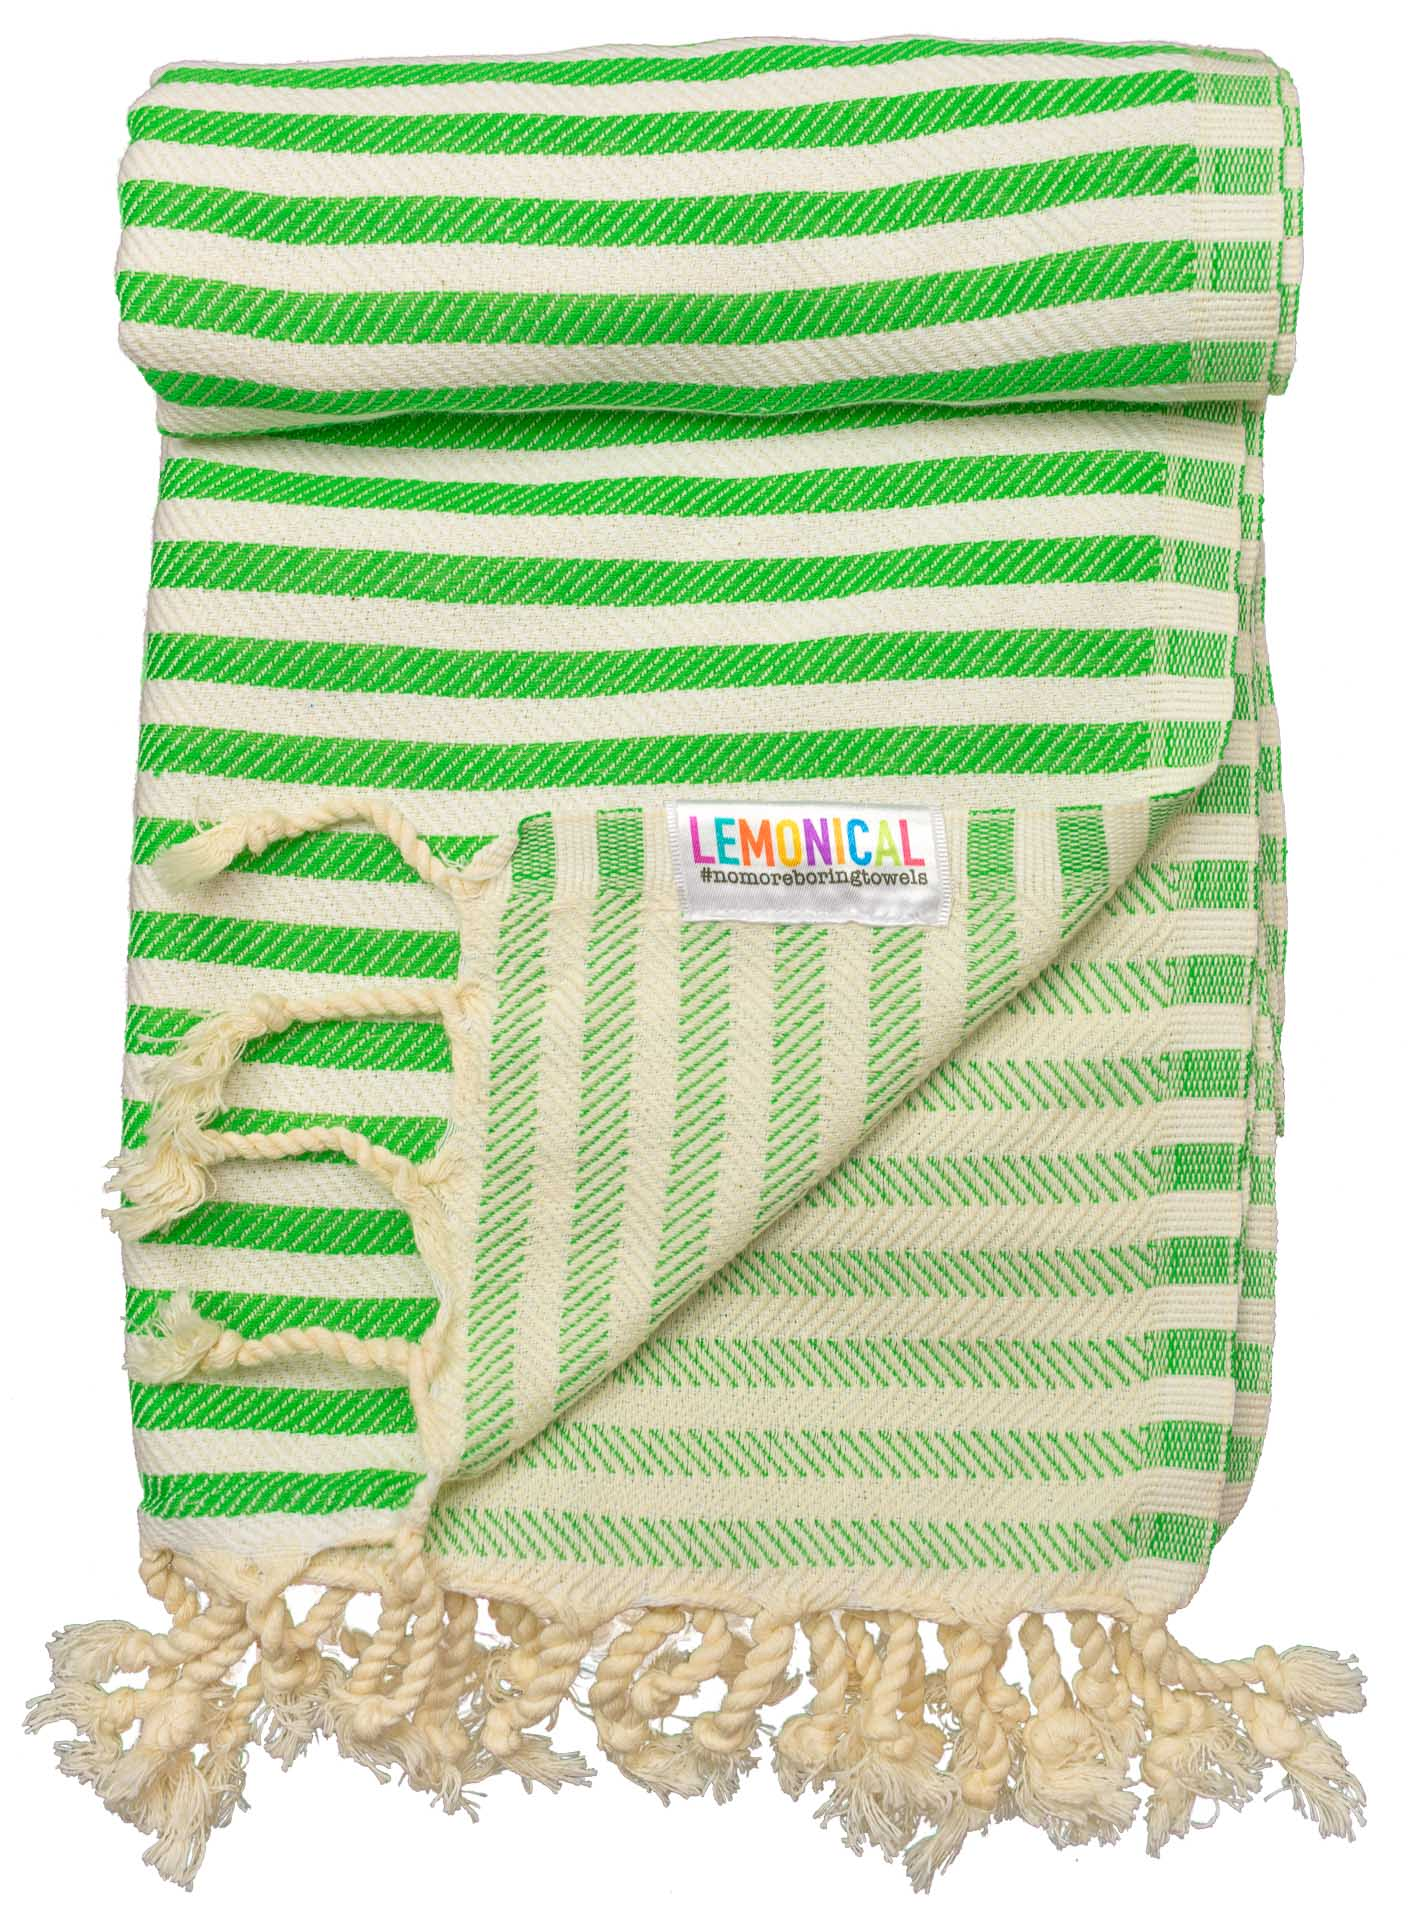 NAUTIC-GREEN-Towel-Lemonical-3